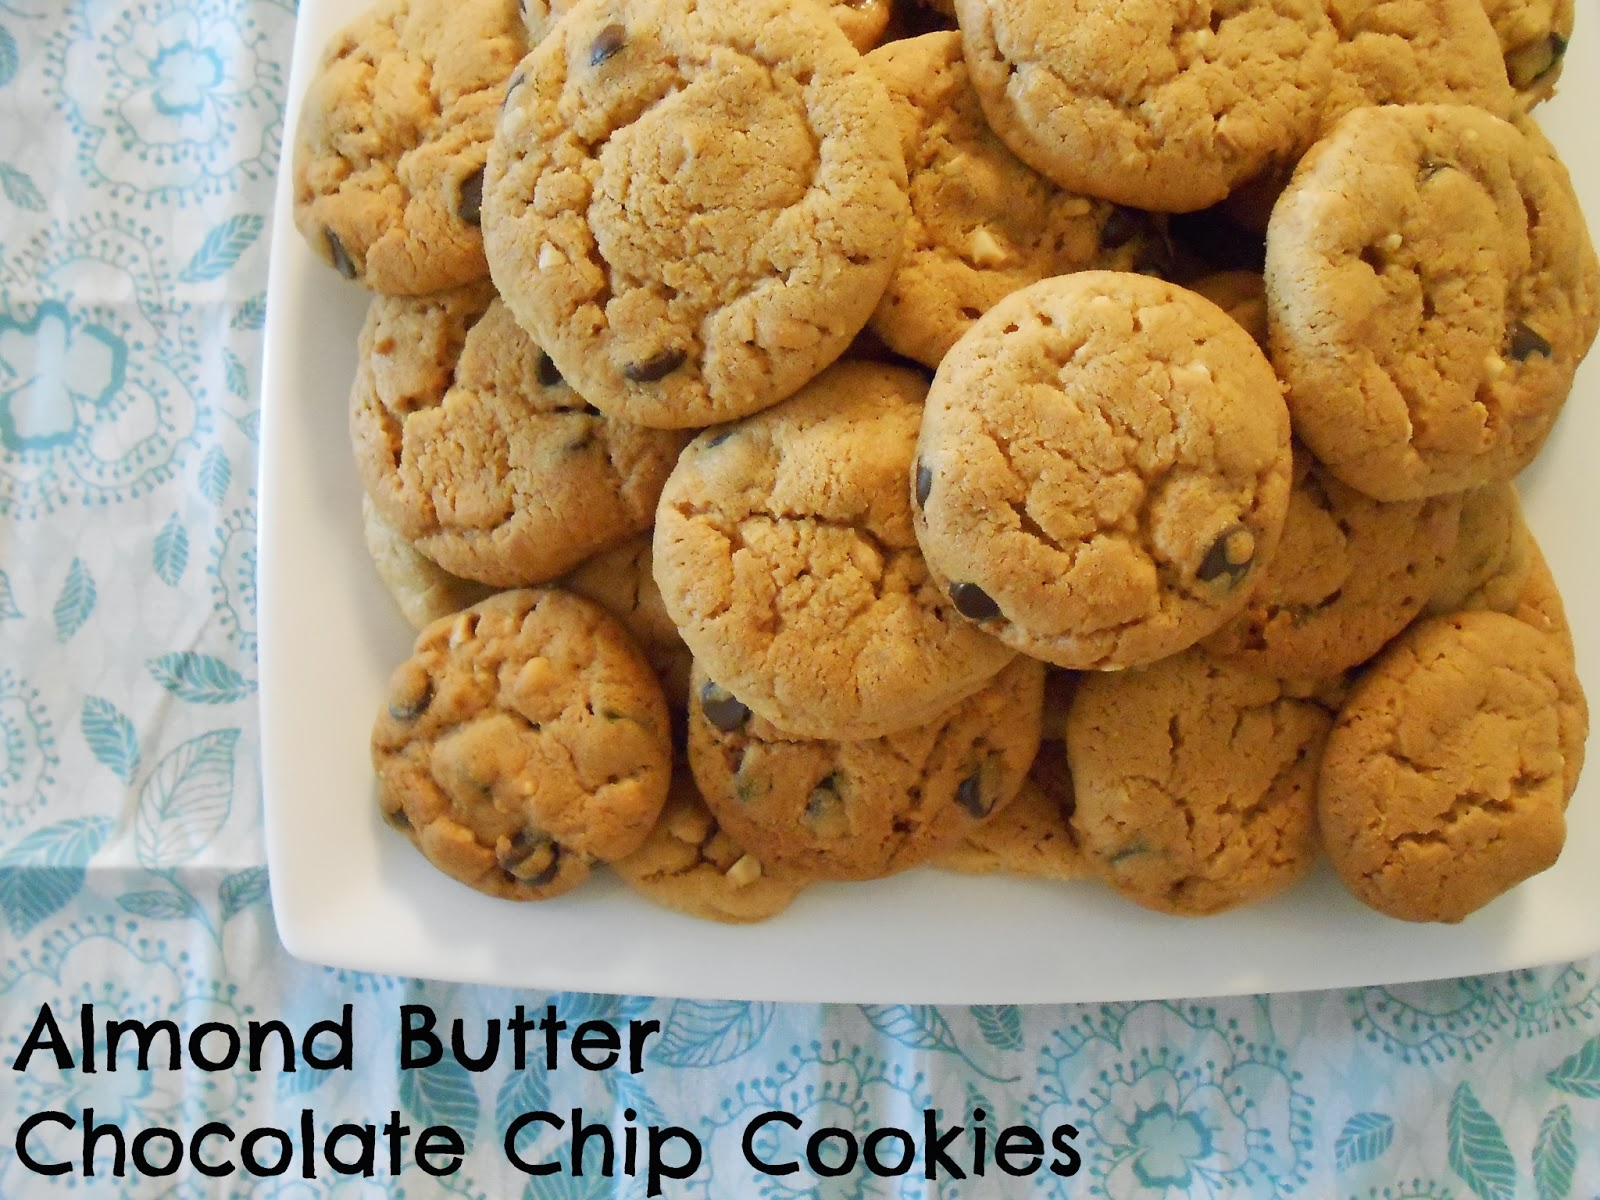 Beyond the Cookie Cutter: Almond Butter Chocolate Chip Cookies